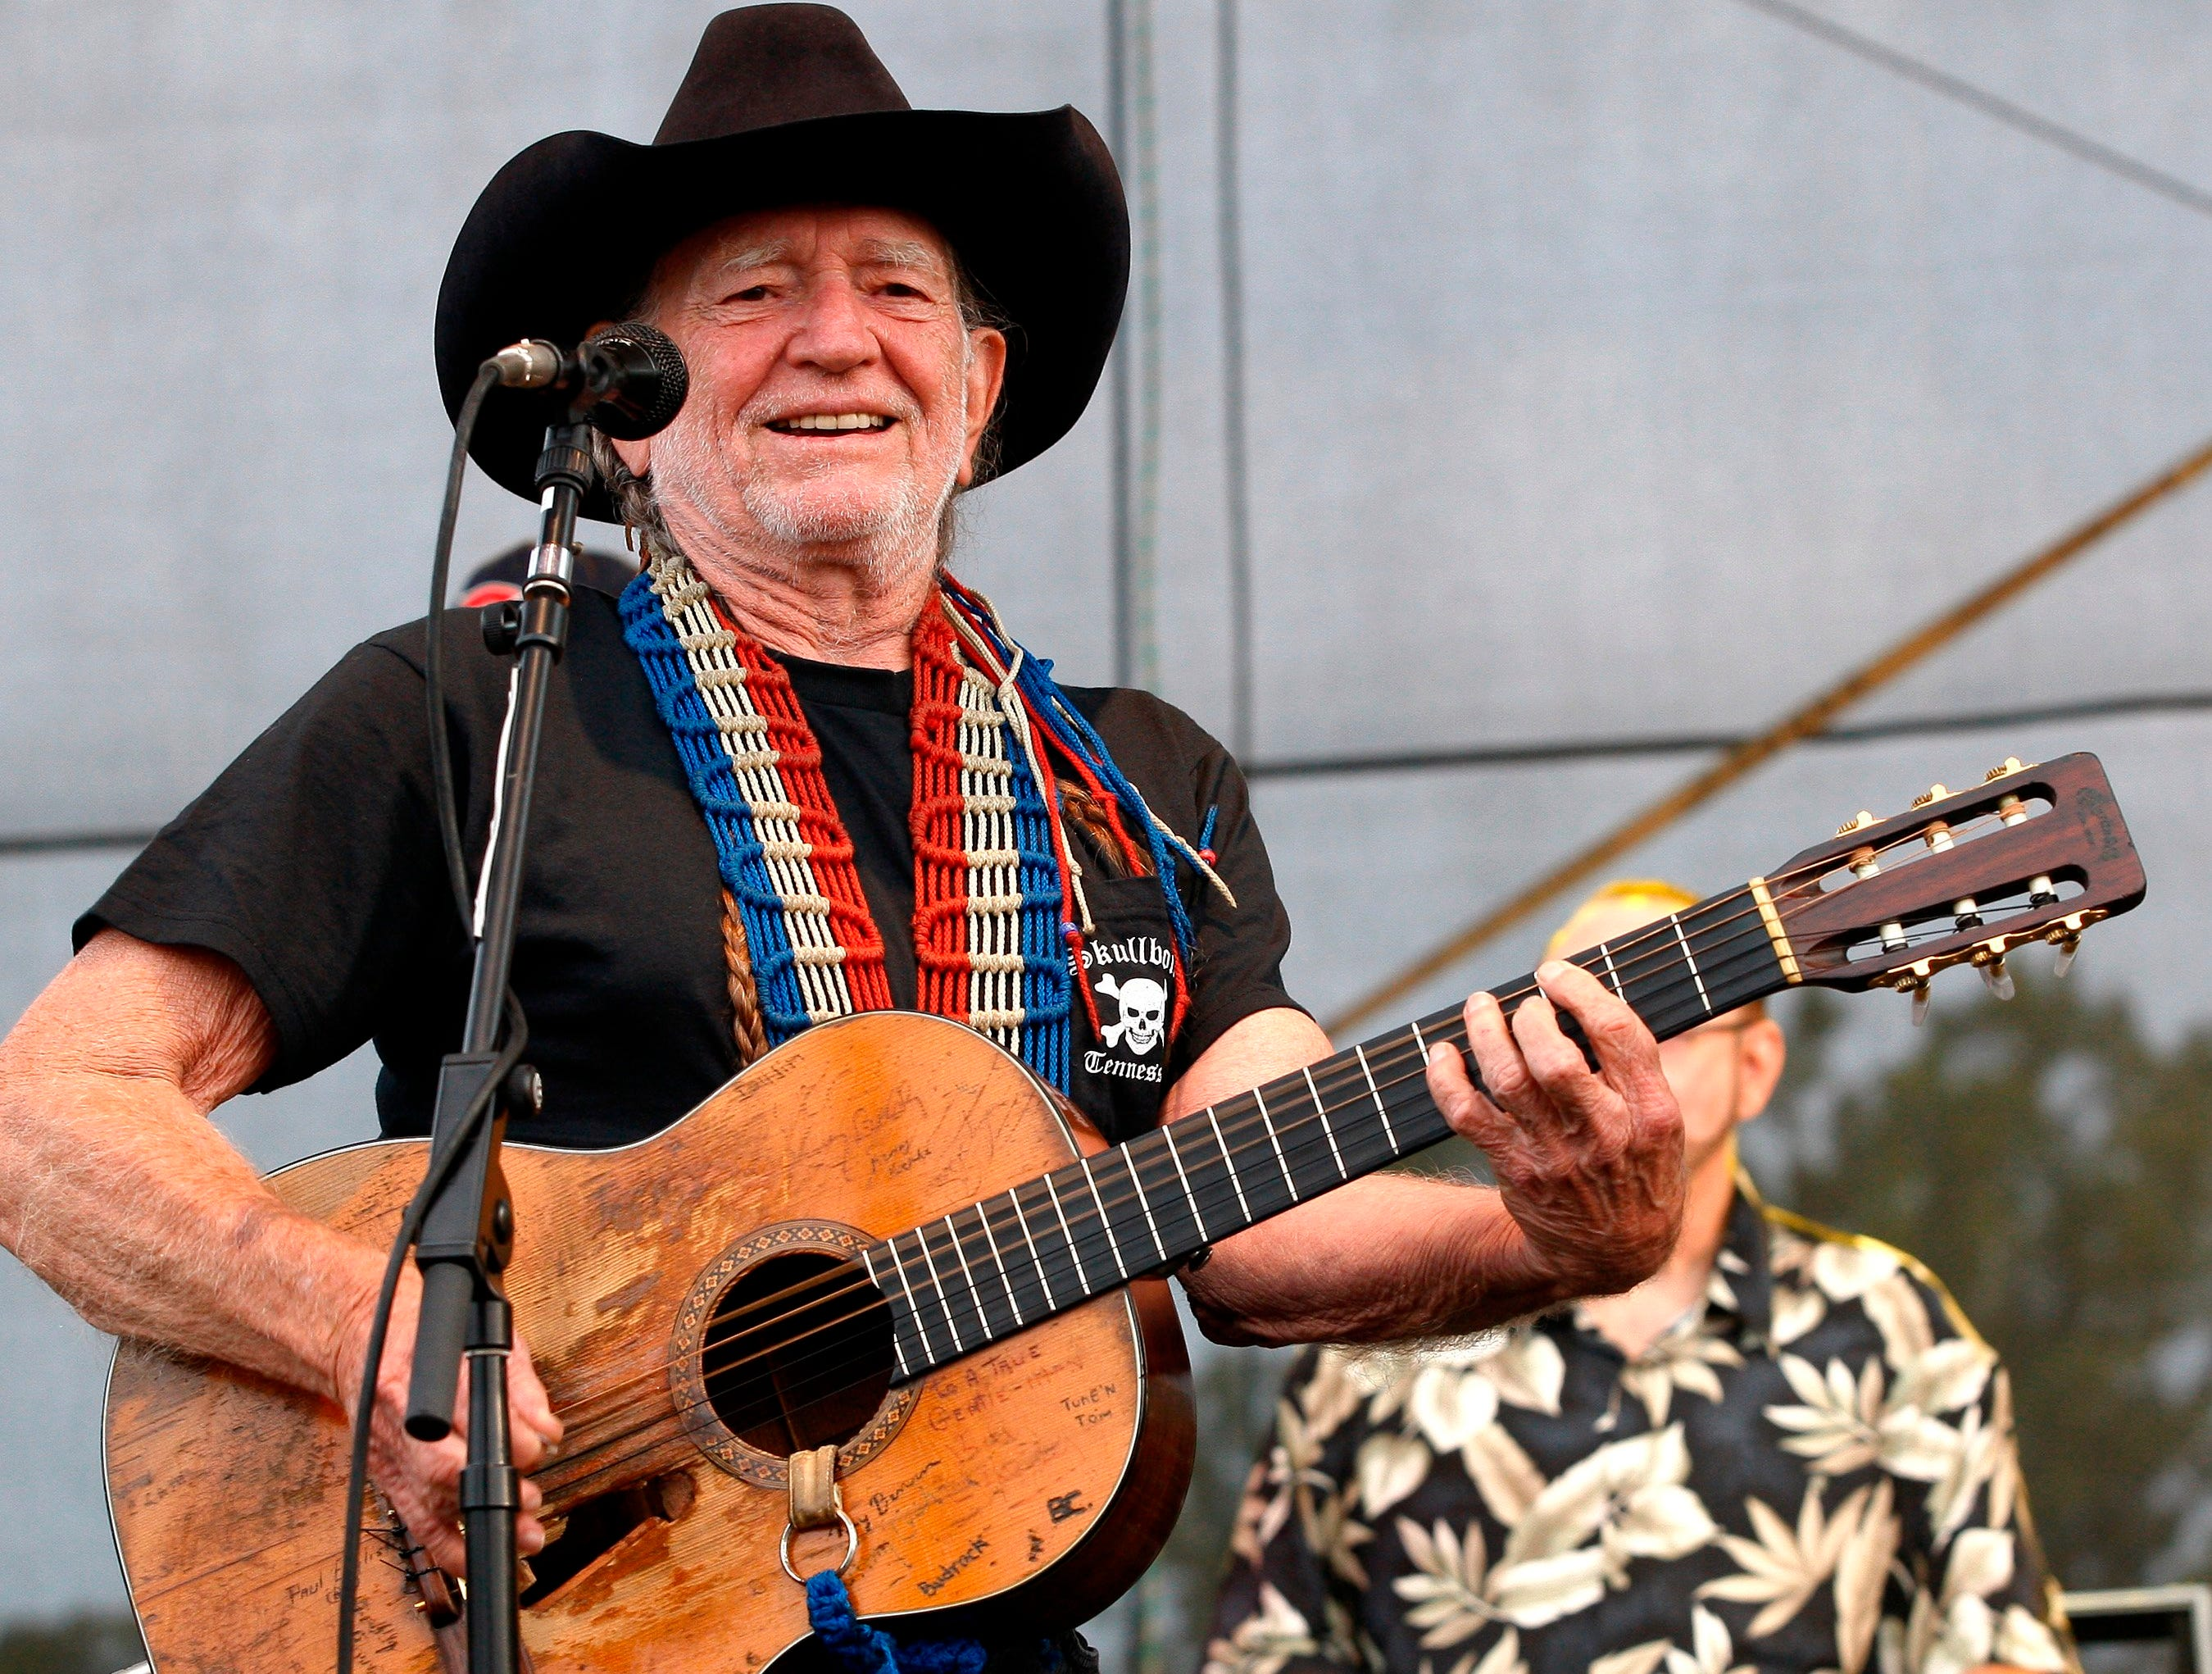 Willie Nelson performs at the Bonnaroo Music and Arts Festival 2008,  Friday, June 13, 2008, in Manchester, Tenn.